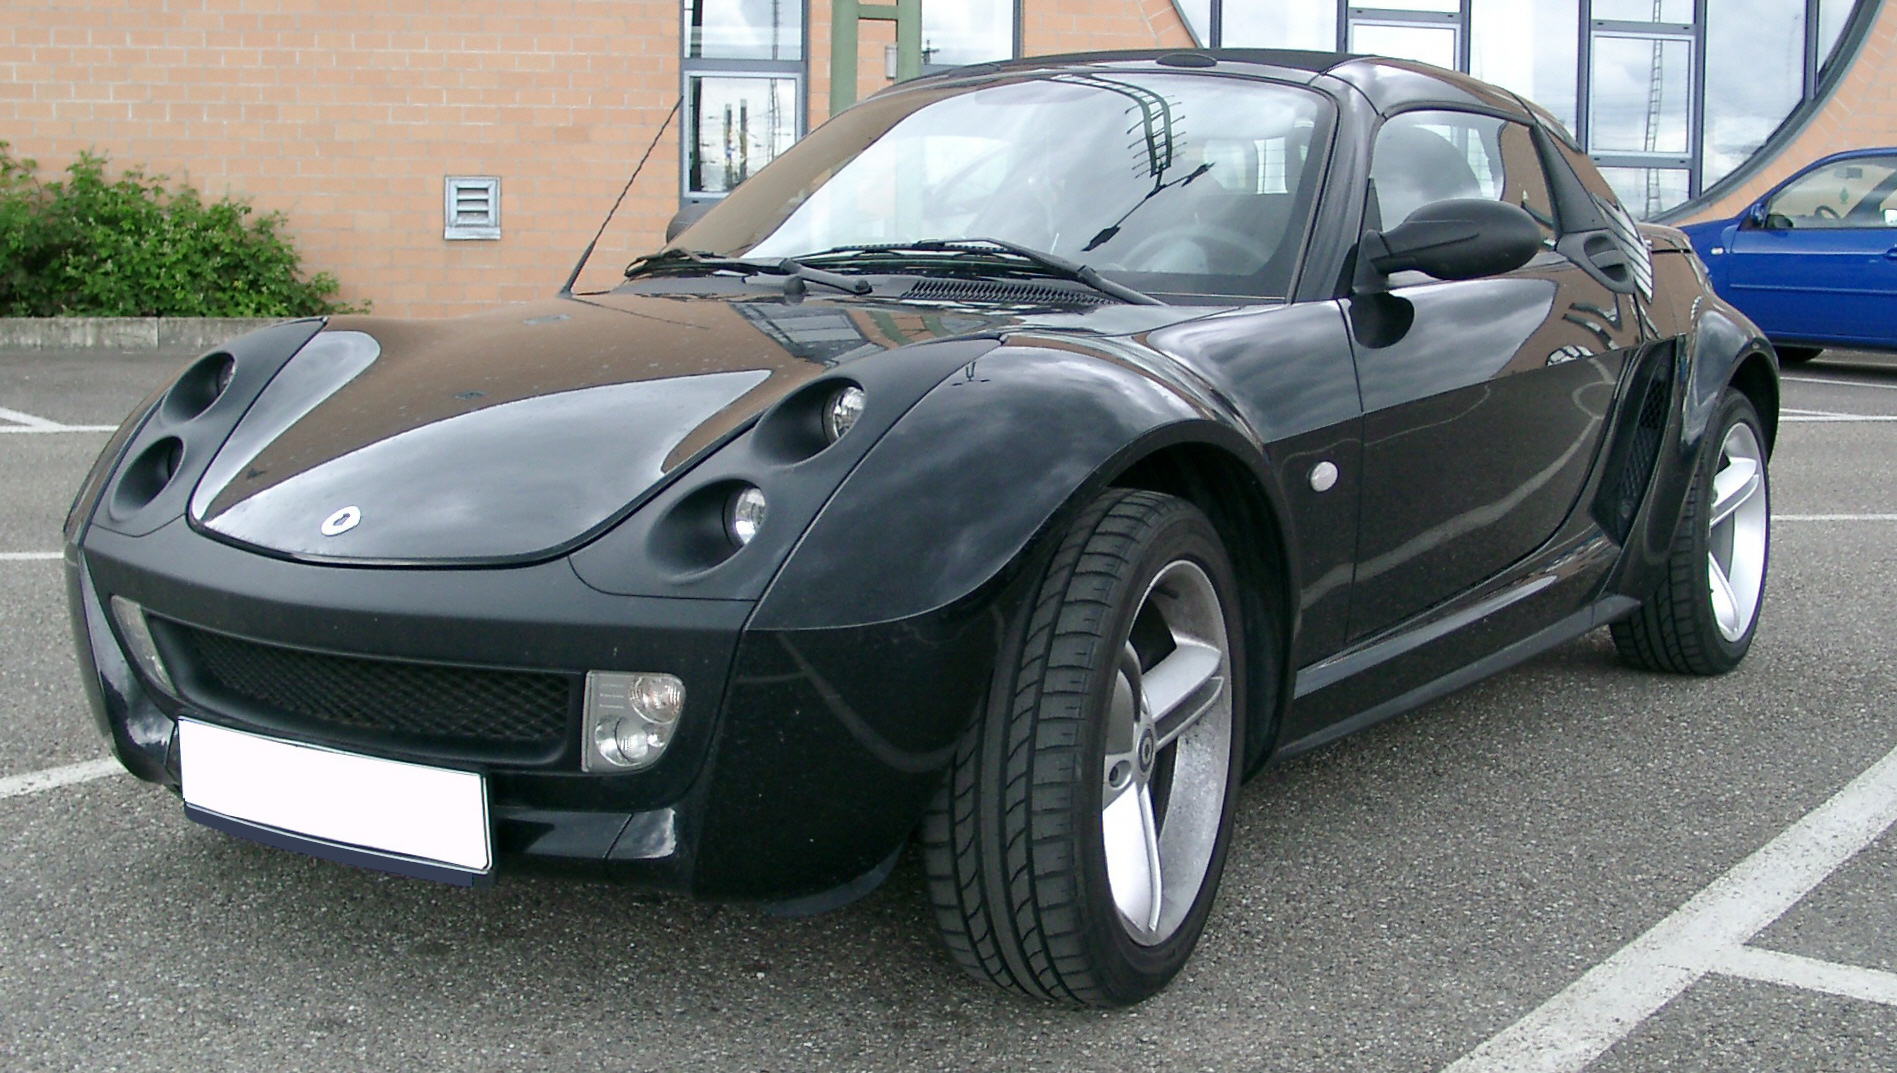 file smart roadster front wikipedia. Black Bedroom Furniture Sets. Home Design Ideas